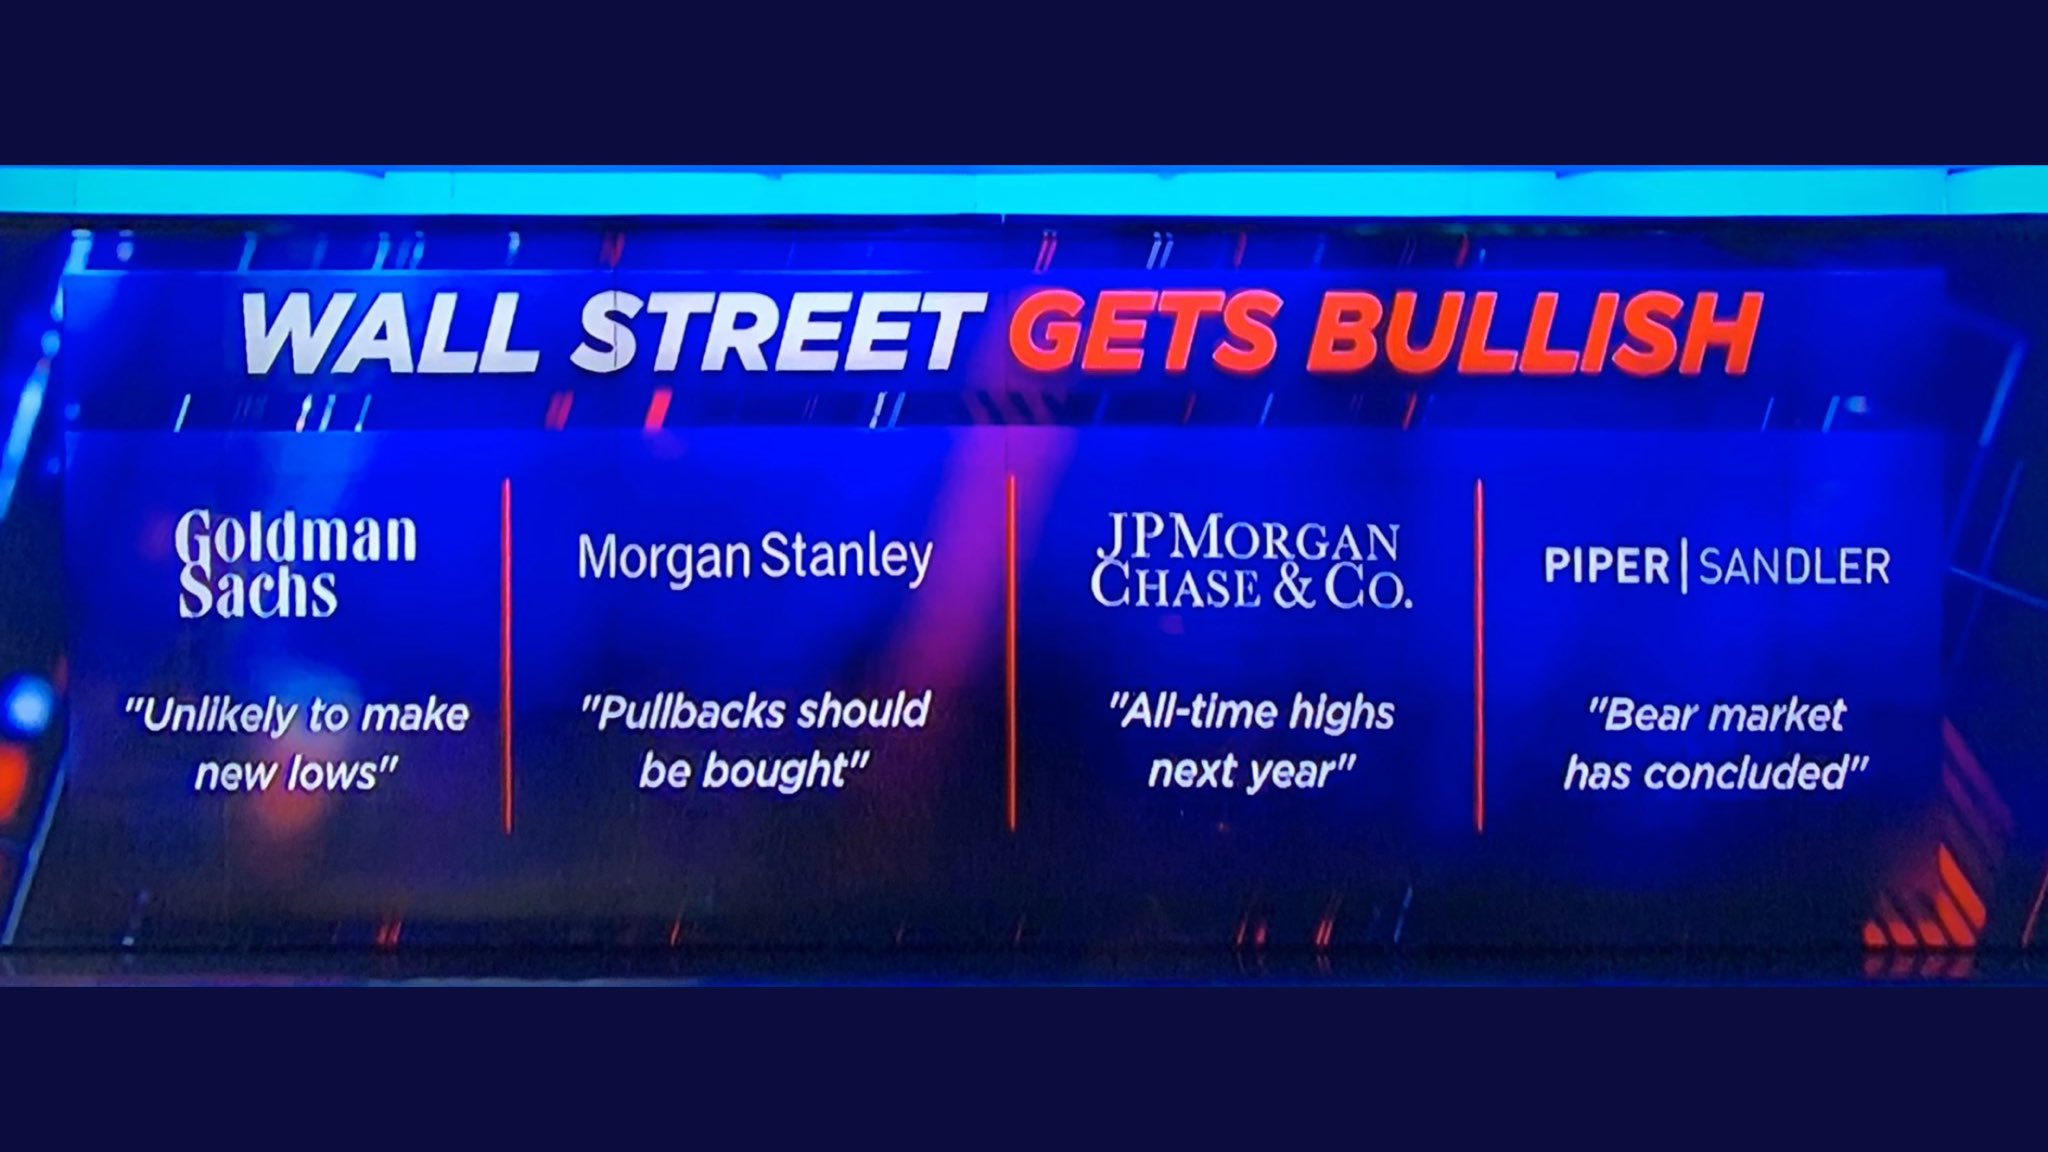 Wall Street Gets Bullish